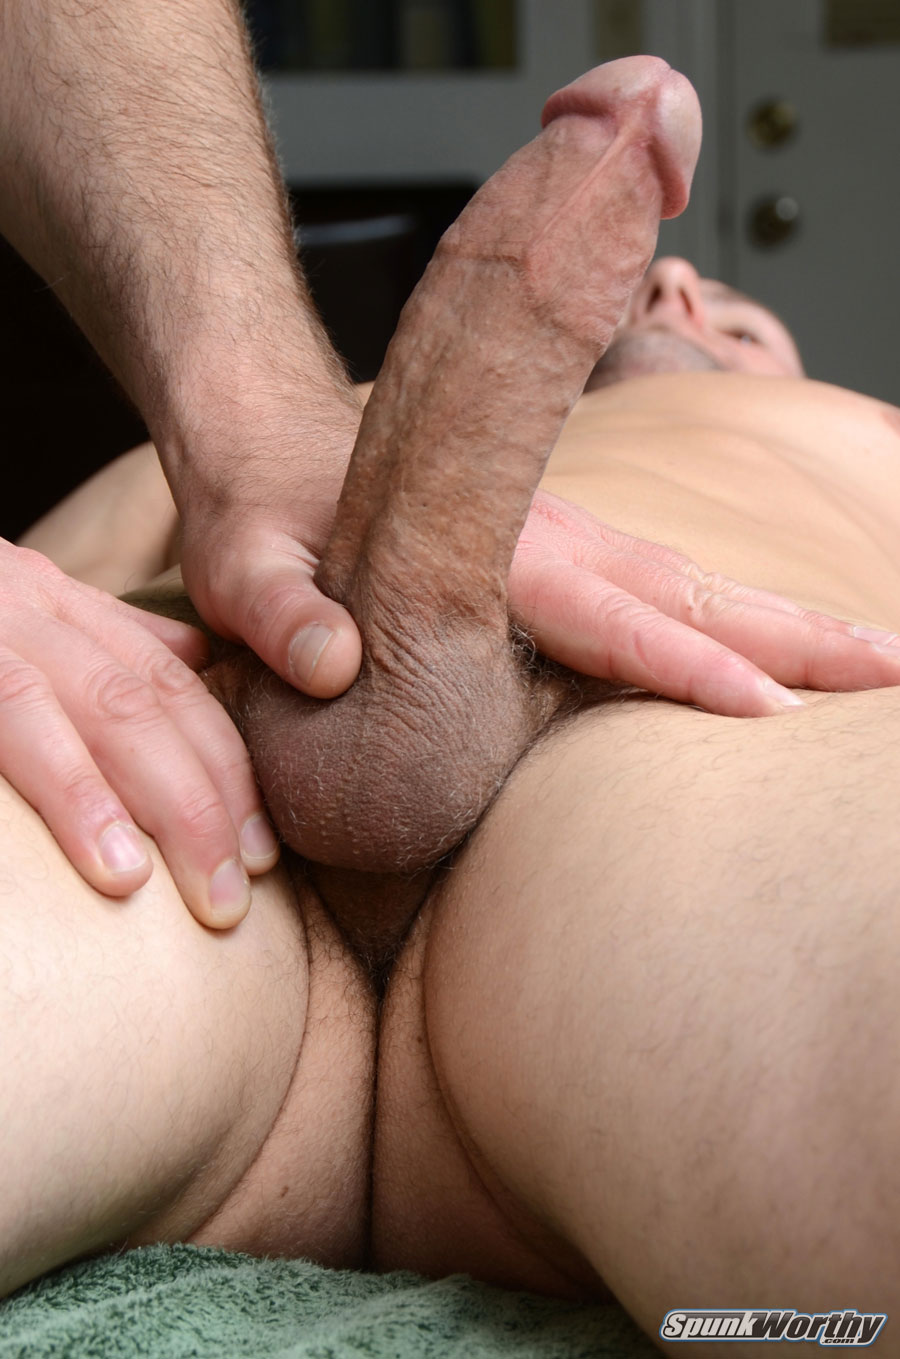 gay massage porn video Enjoy  HD gay videos with daily updates and exclusive porn gay channels at .